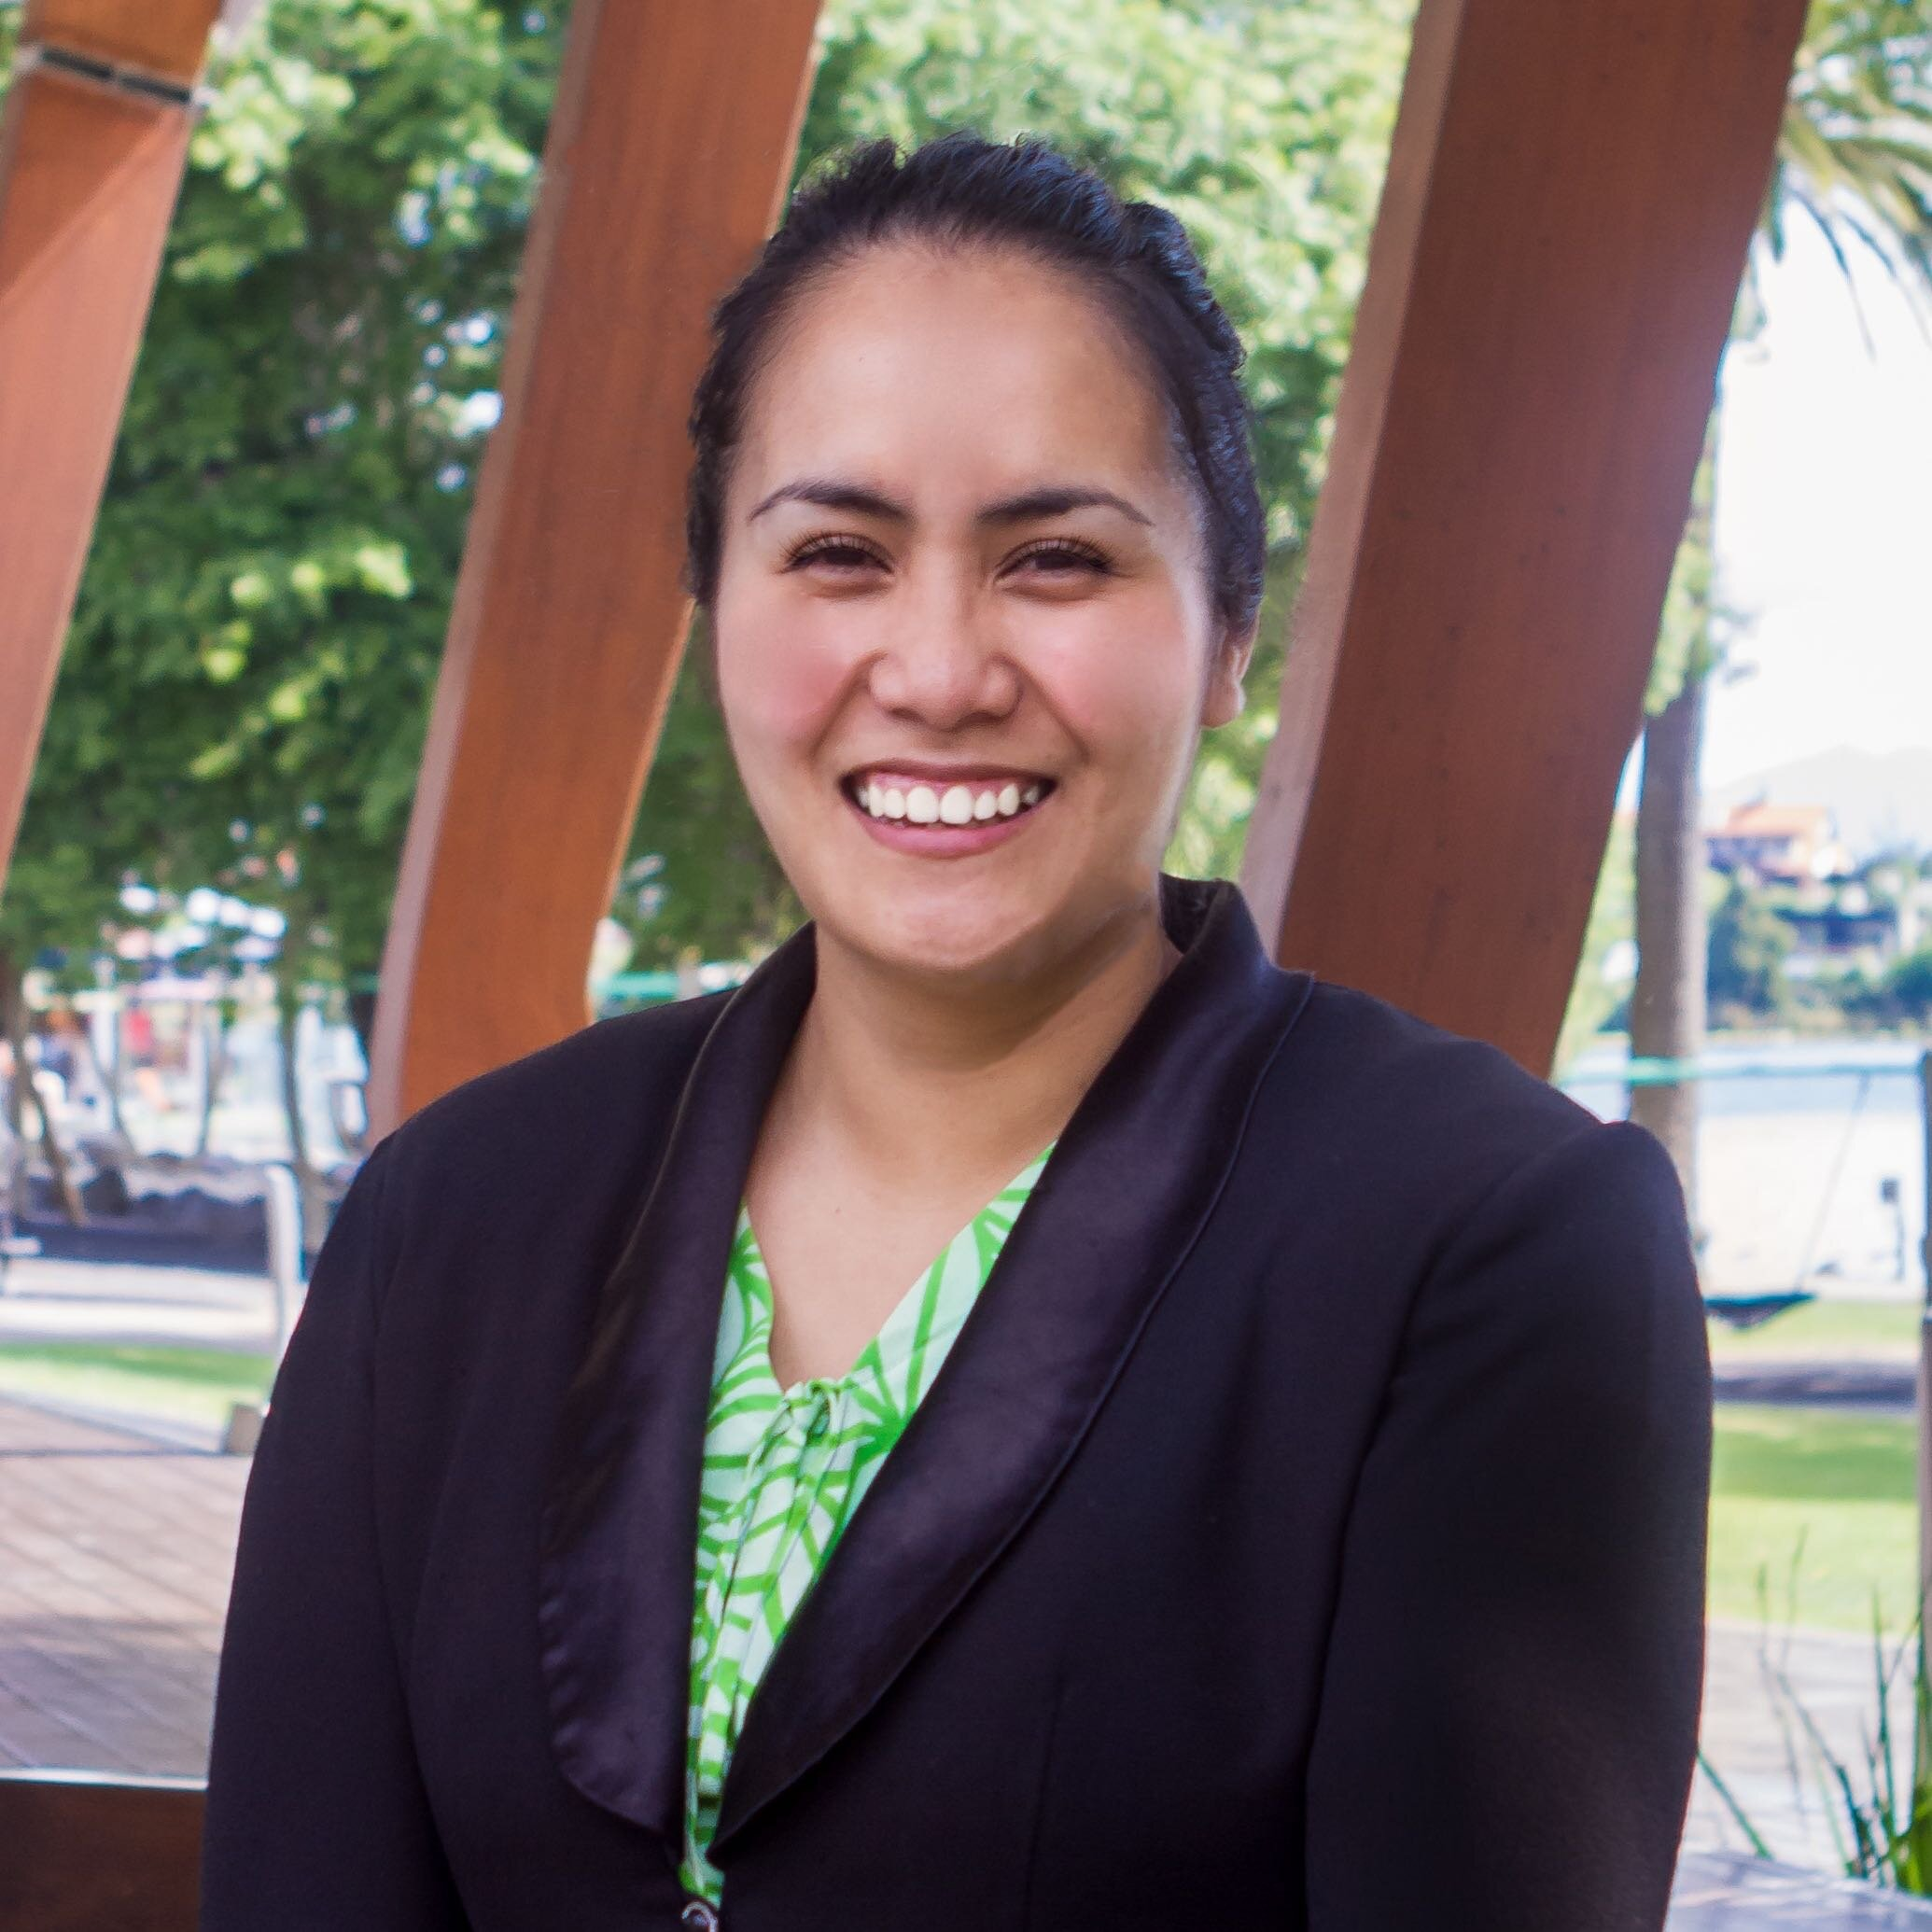 Andrea Fua - Chief Operating Officer